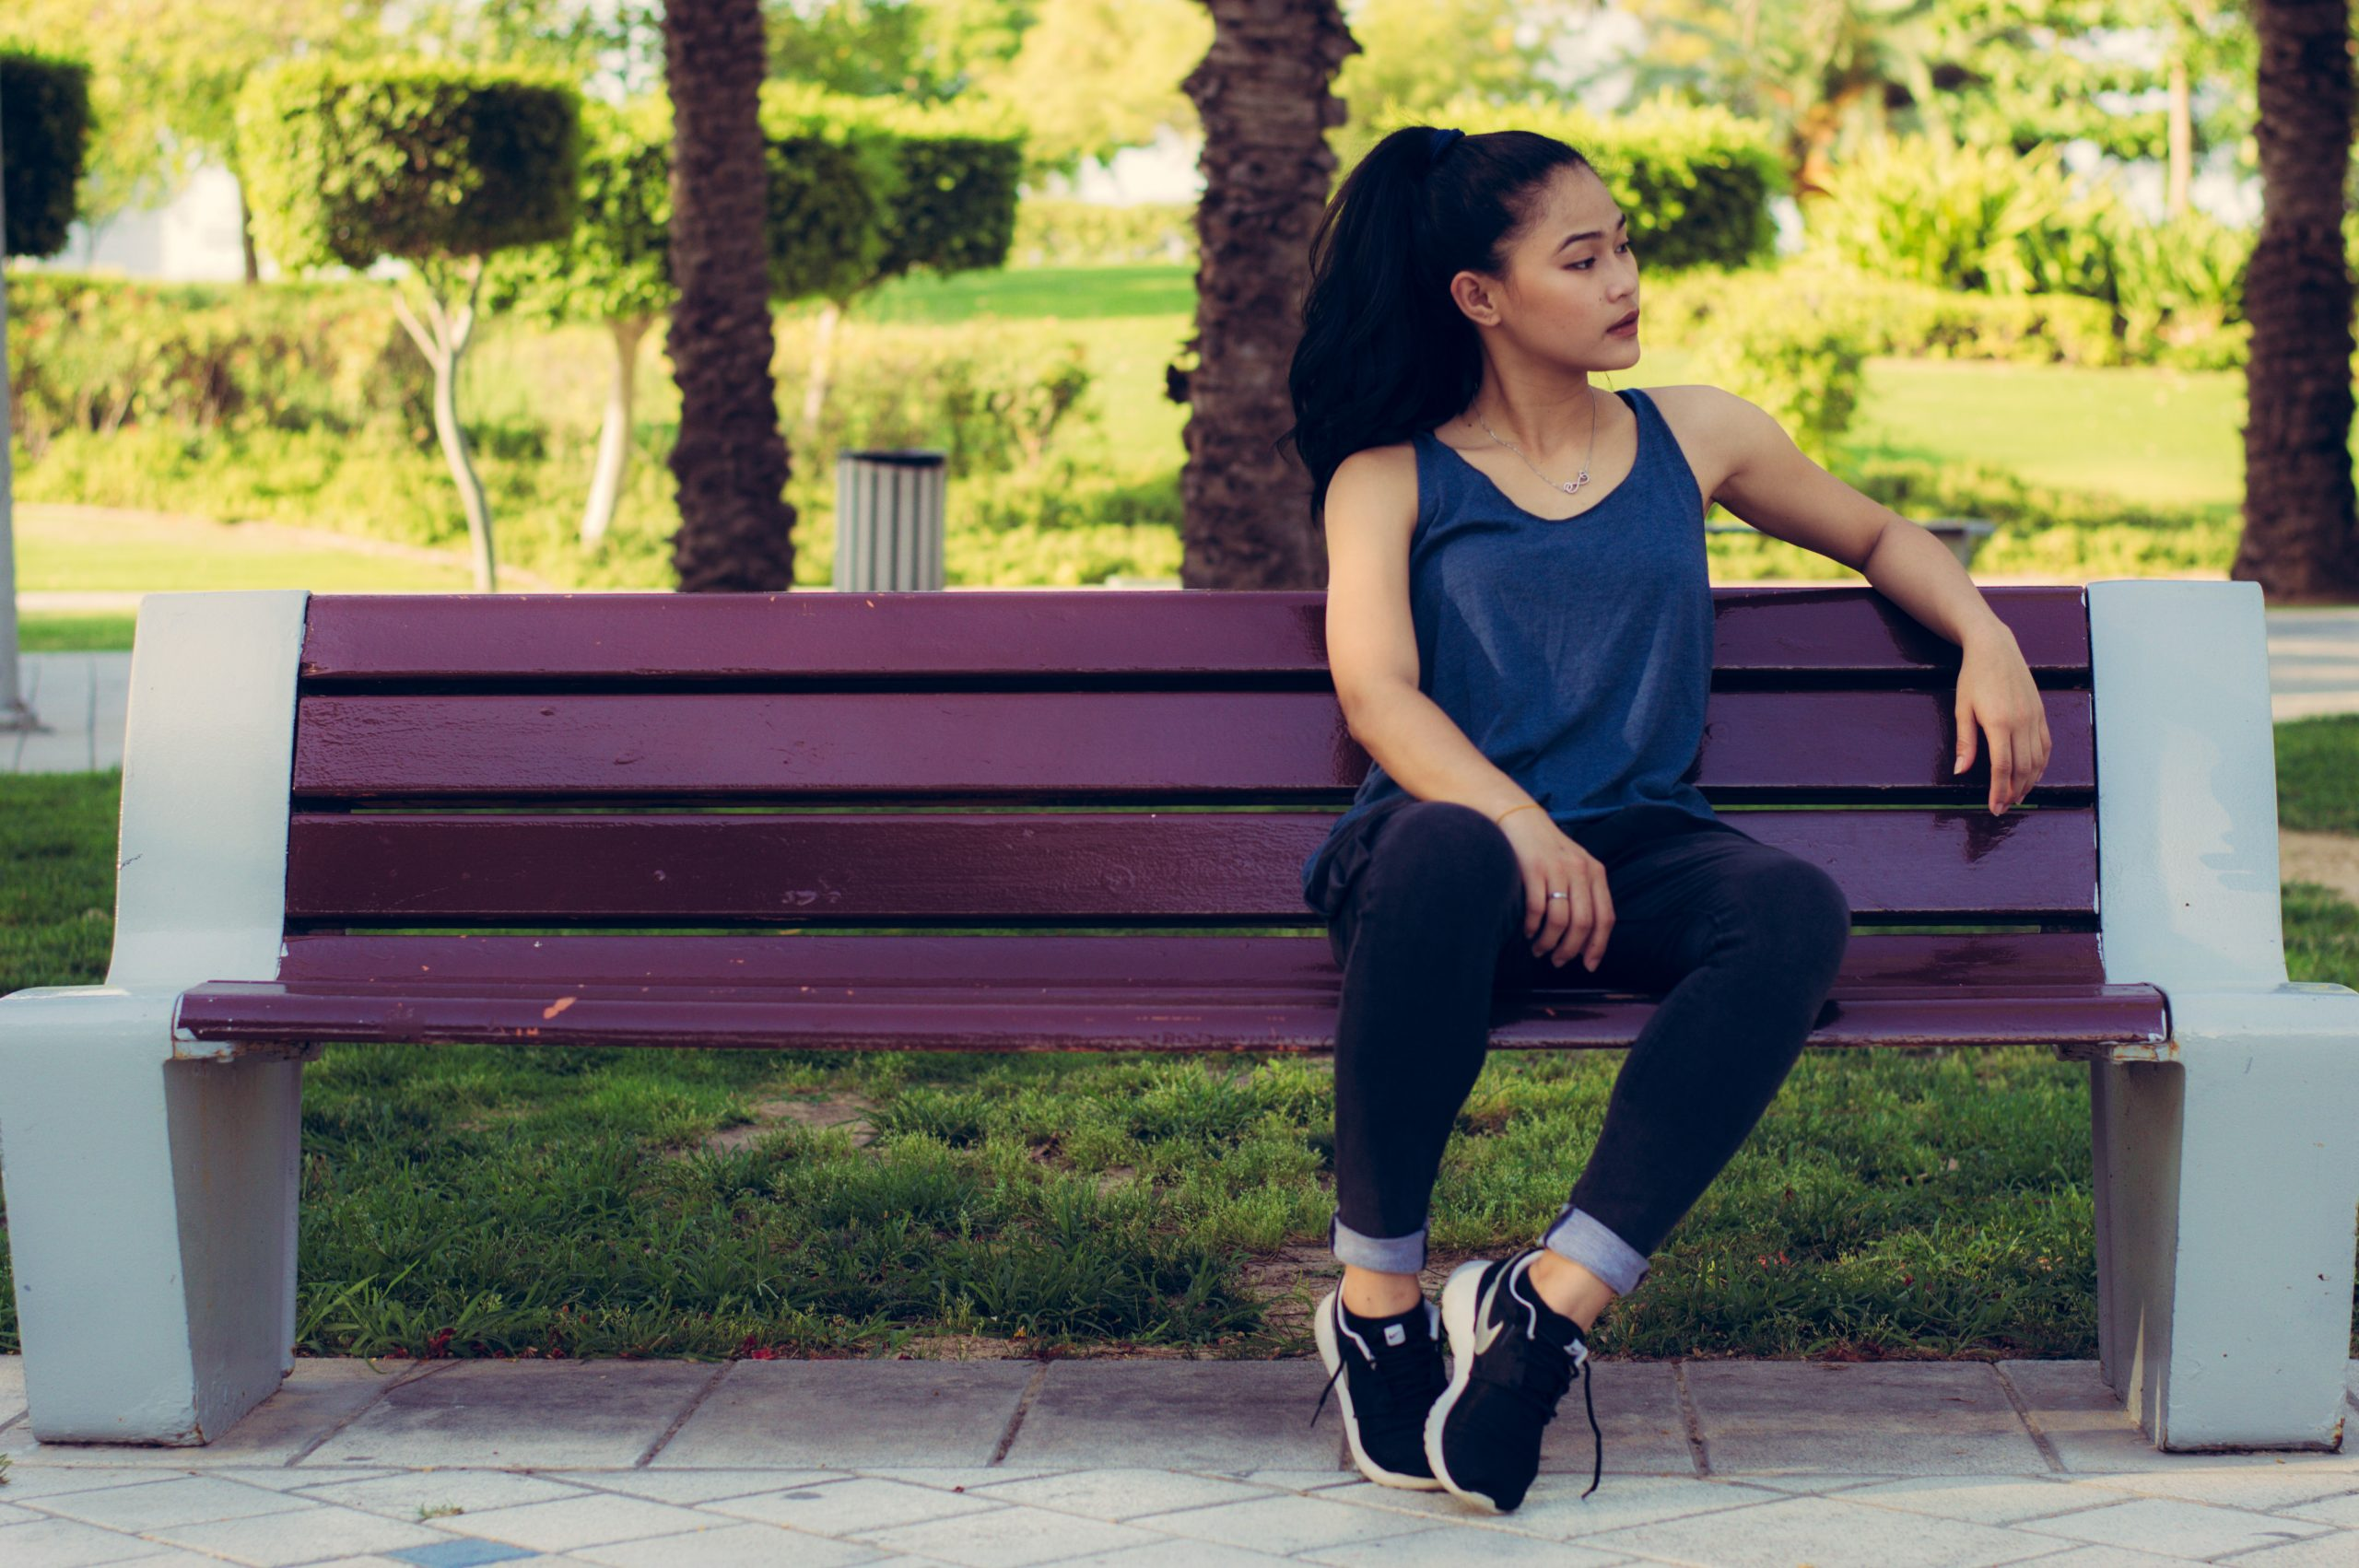 Young person sitting at bench